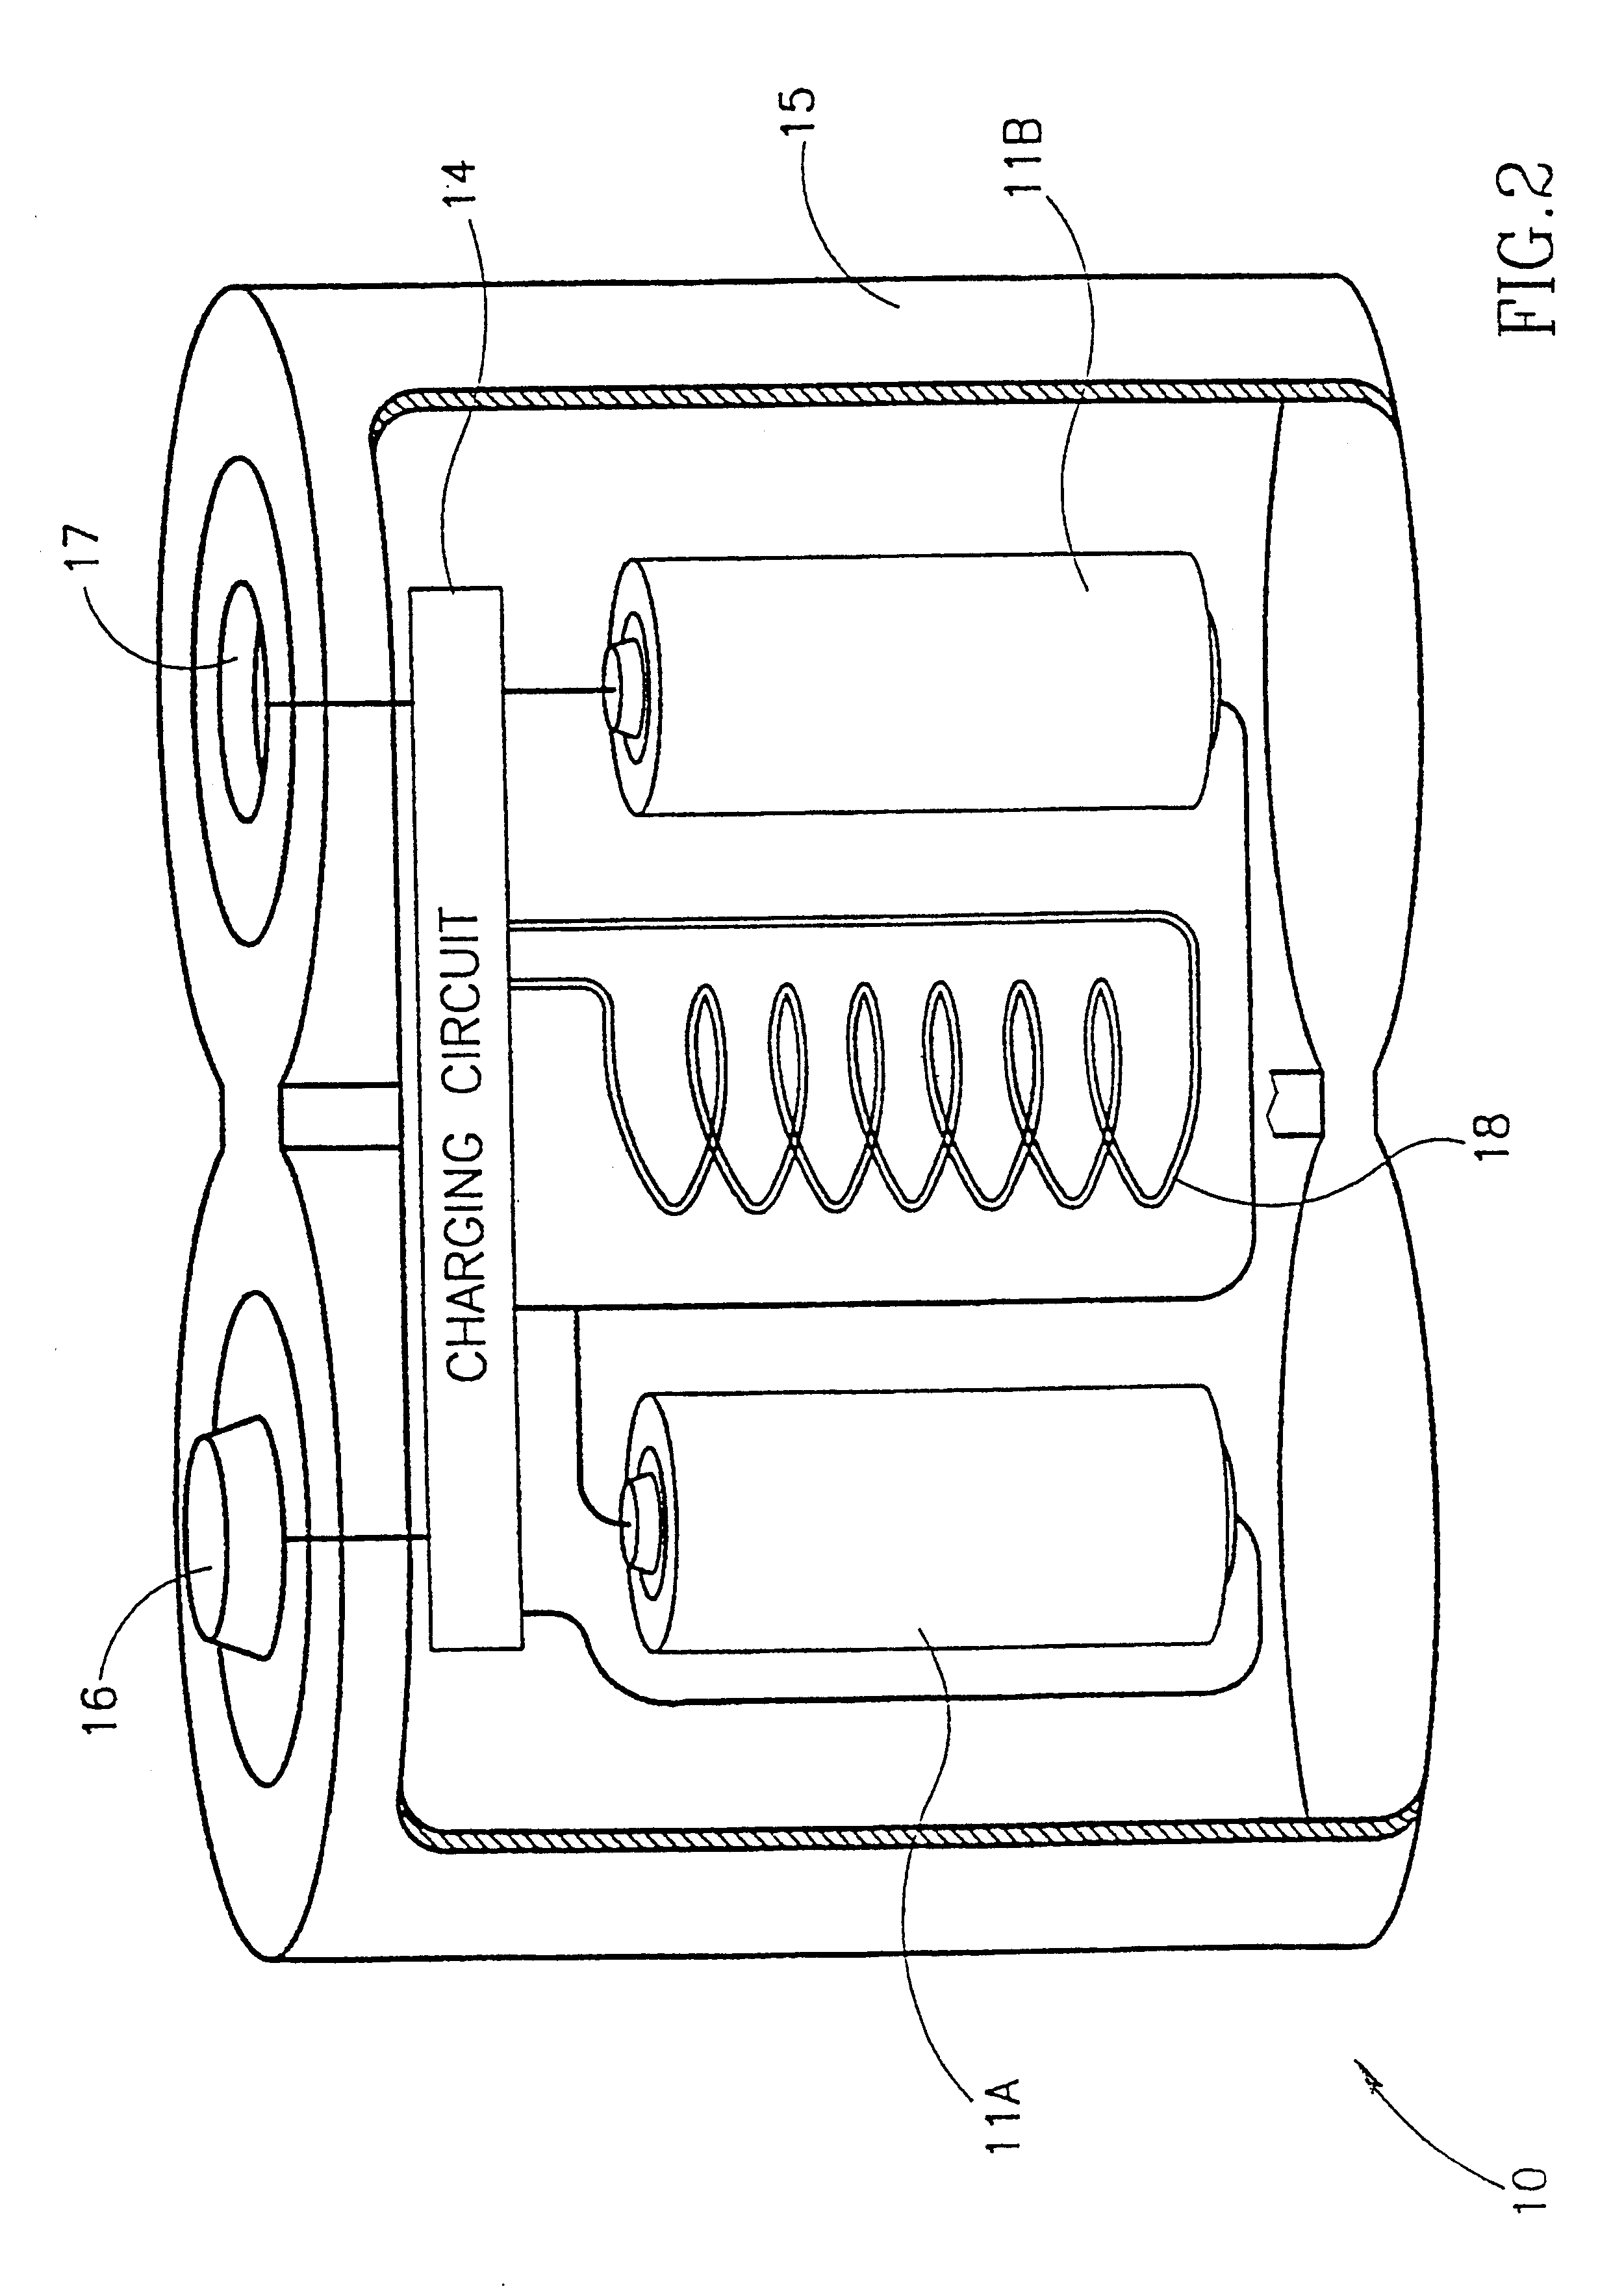 patent us6208115 - battery substitute pack